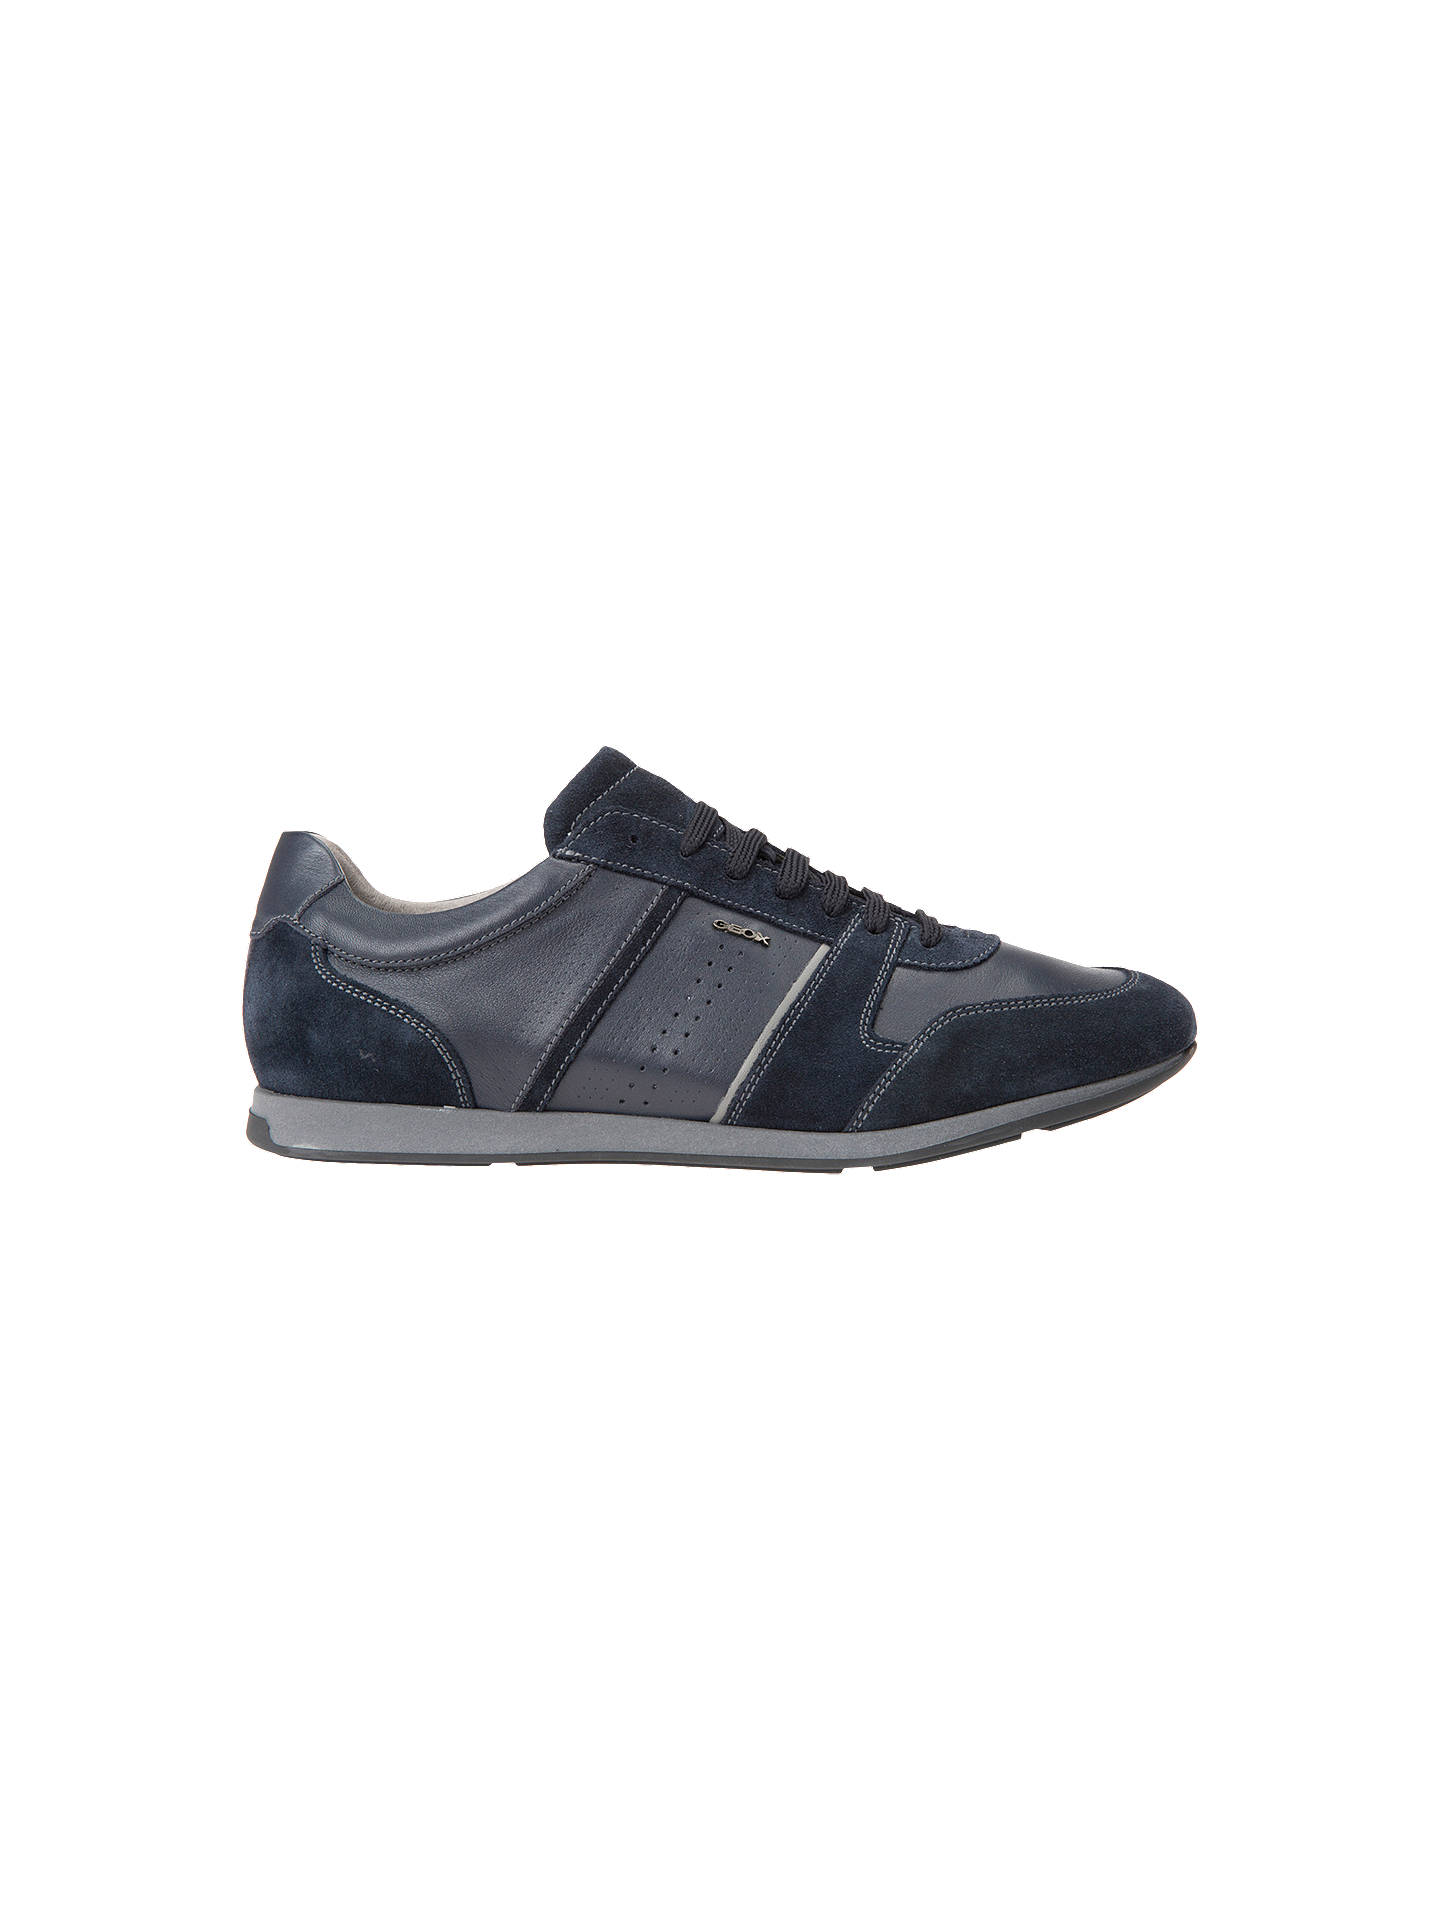 BuyGeox Clemet Trainers ff99bd71fcb